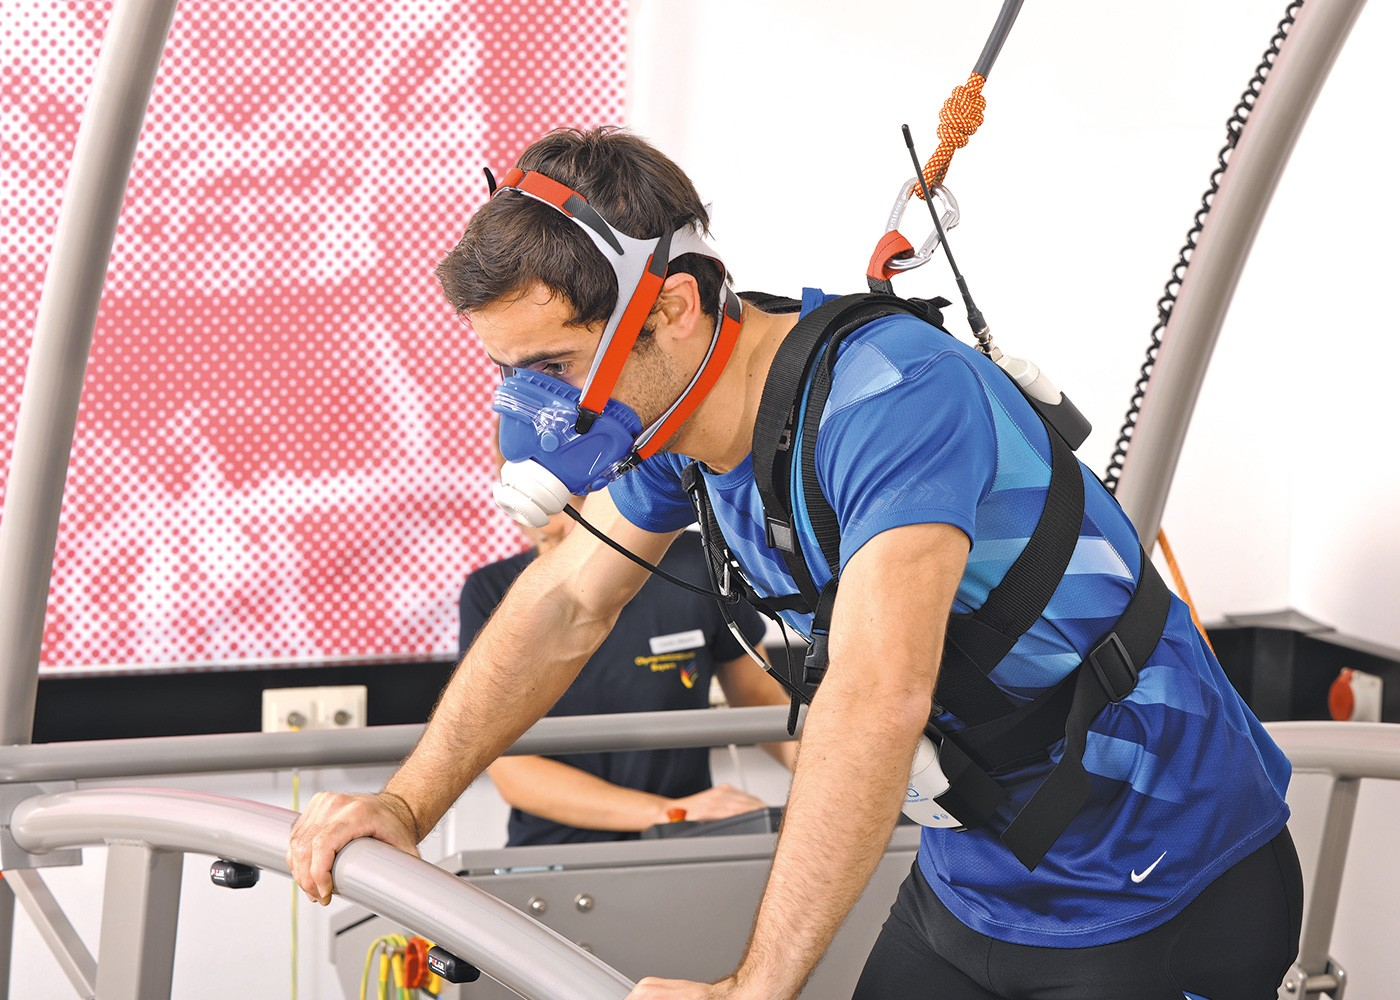 h/p/cosmos oversize treadmill for performance diagnostics